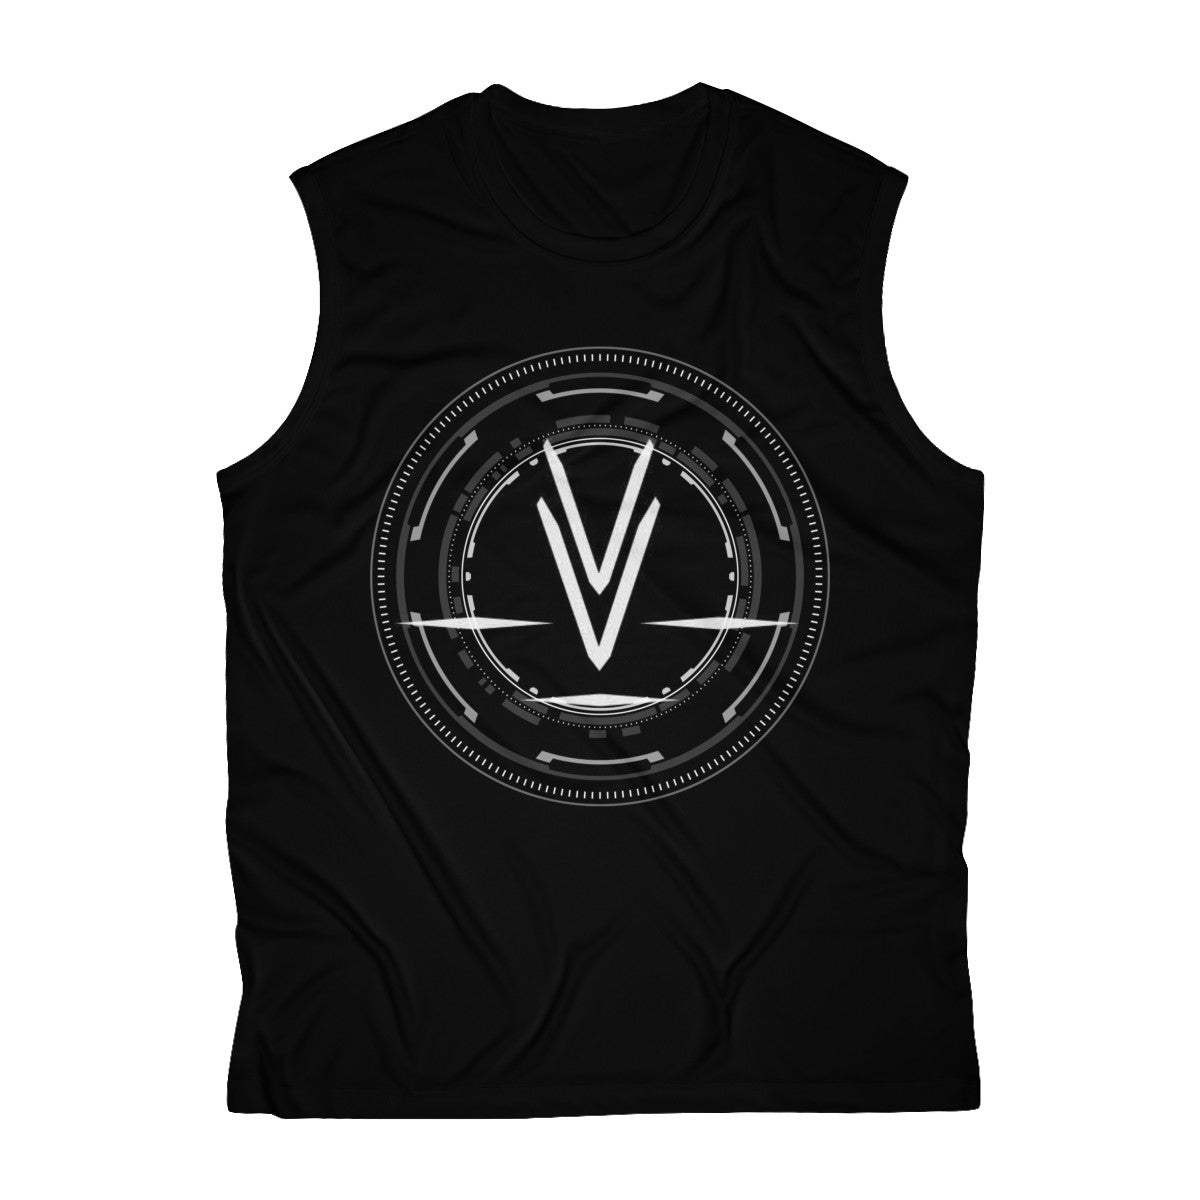 Endvade Men's Sleeveless Performance Tee Hud Design